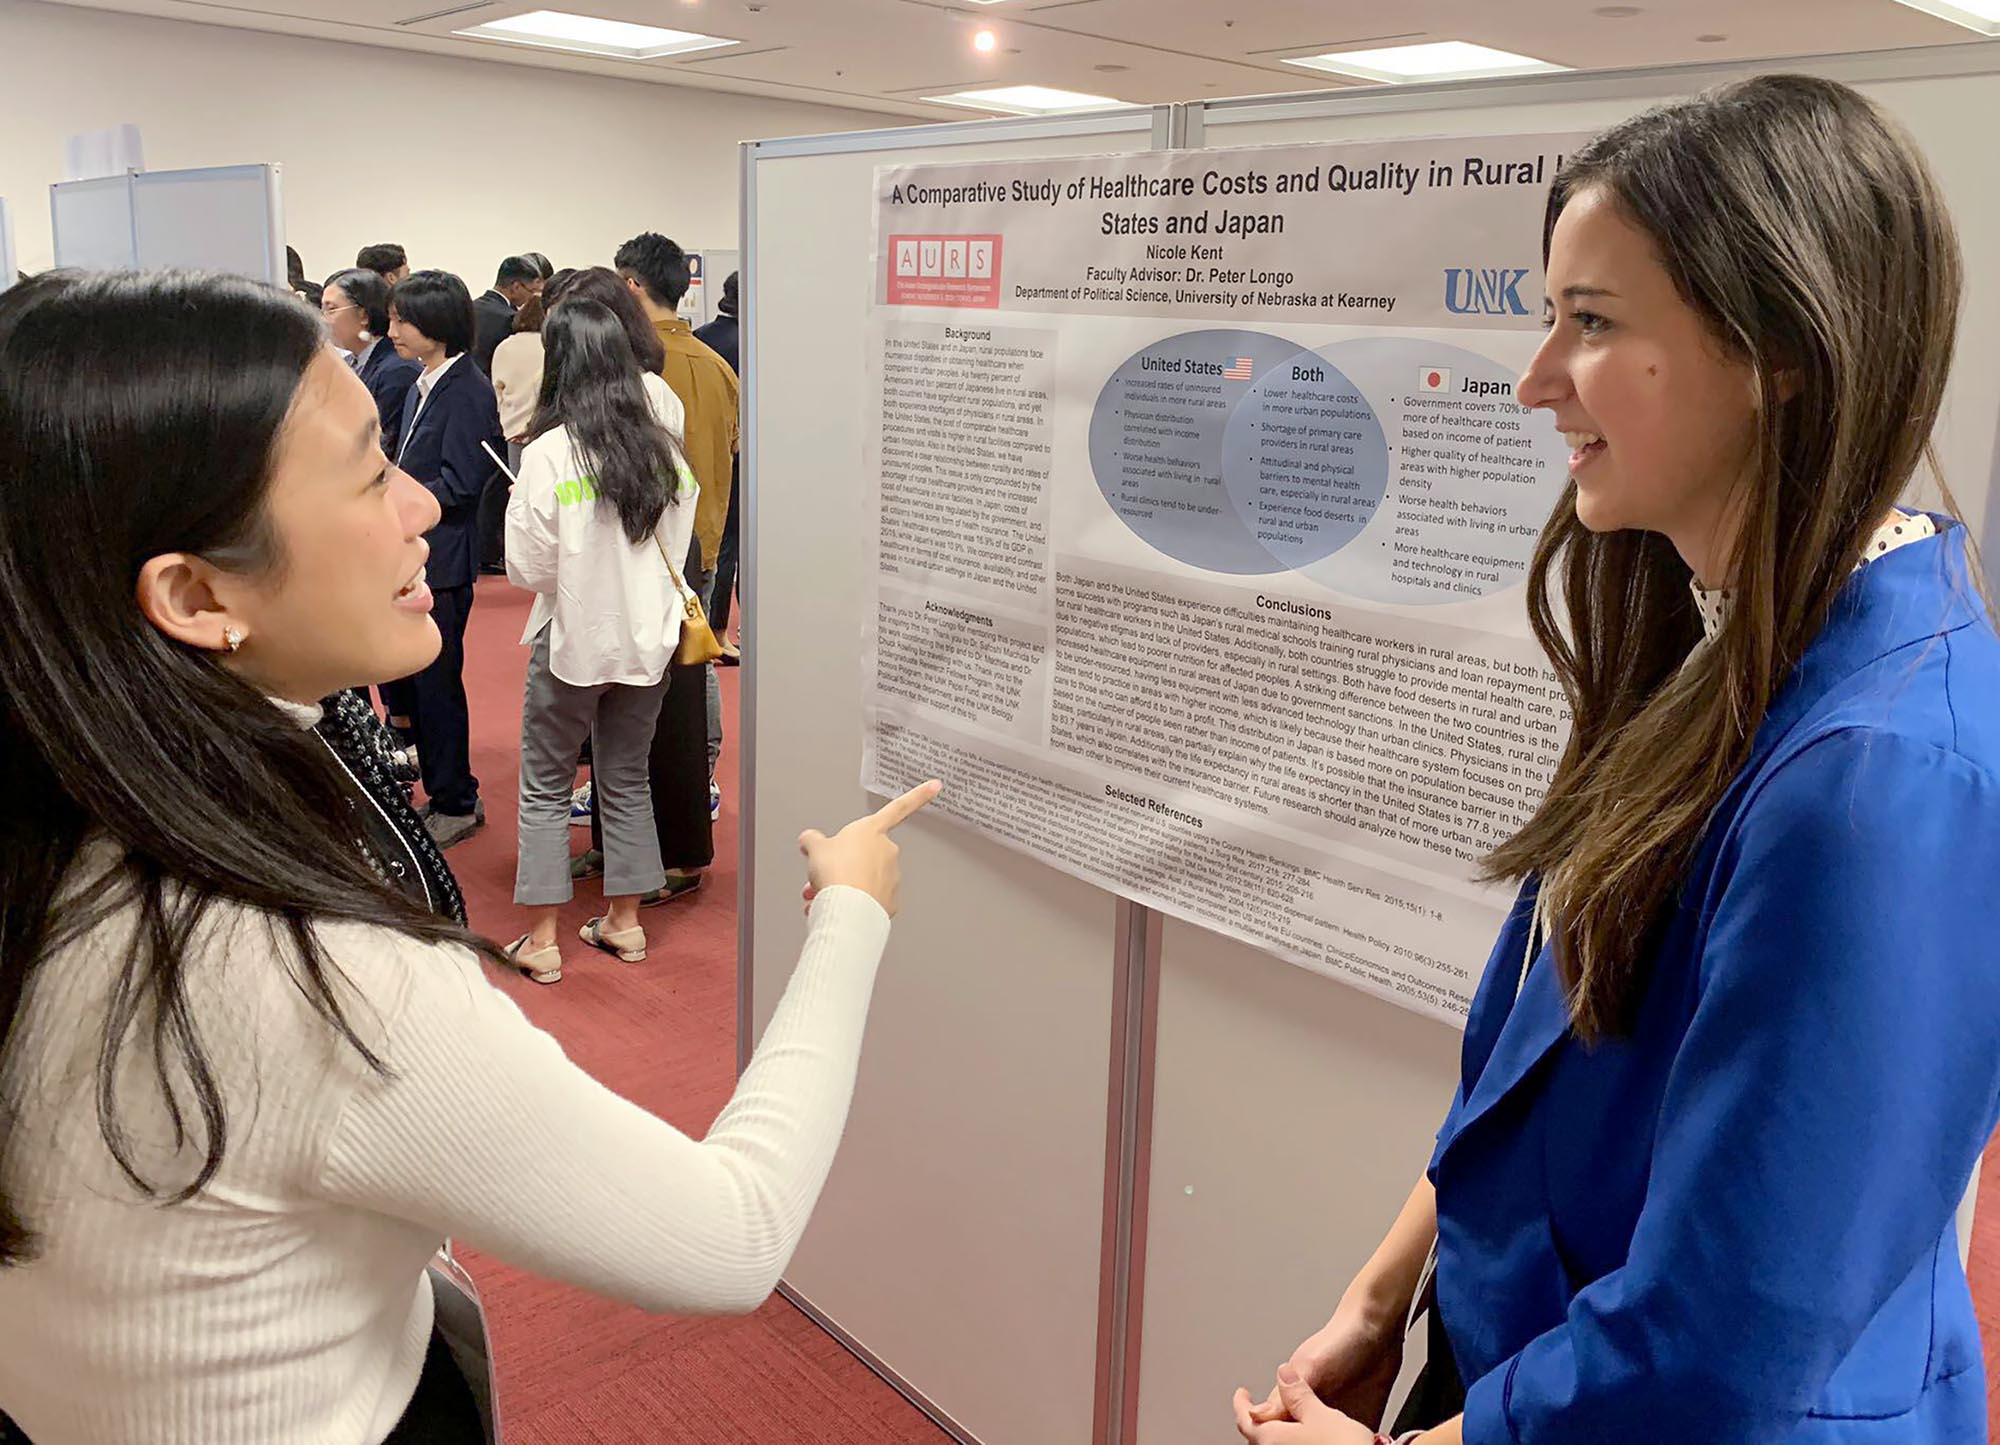 UNK graduate Nicole Kent of Benkelman, right, discusses her study of health care costs and quality in the rural U.S. and Japan during the Asian Undergraduate Research Symposium in Tokyo.